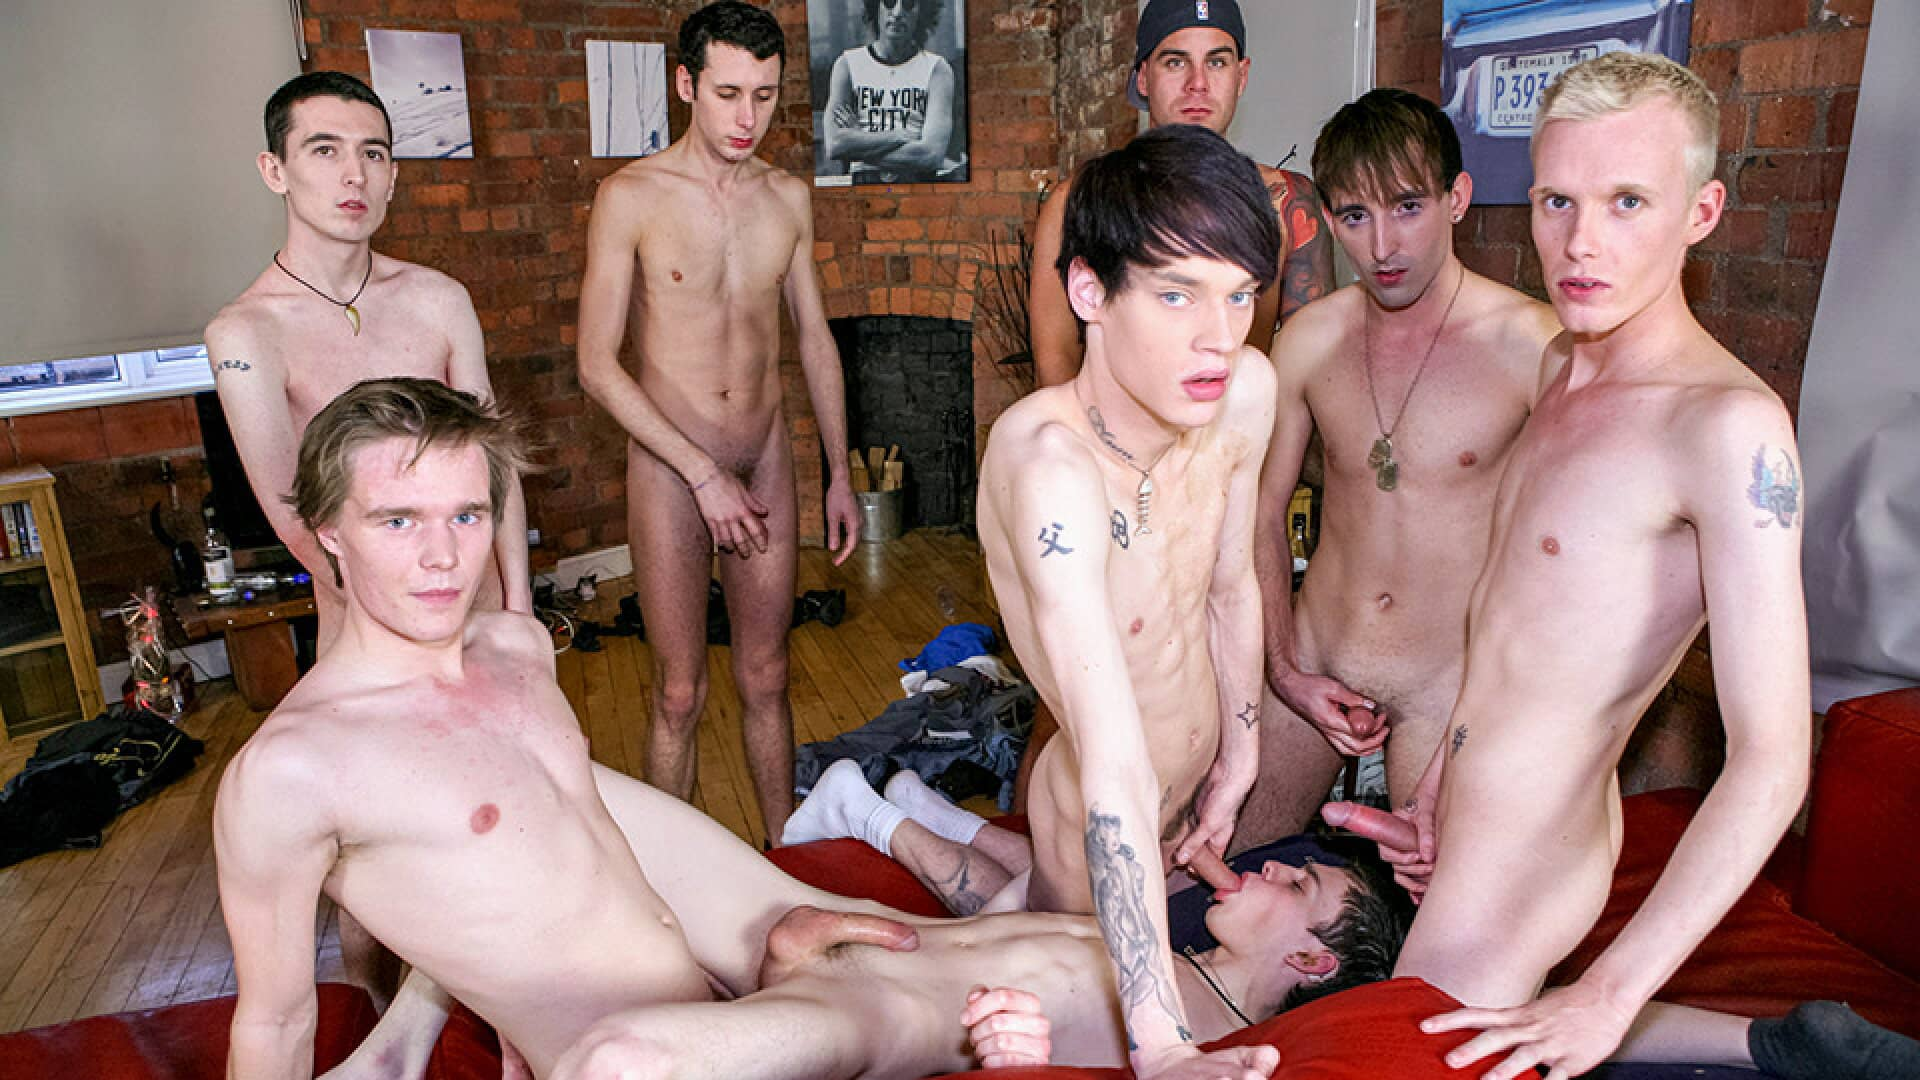 Party Time For Cock-Crazed Boys, Part 1